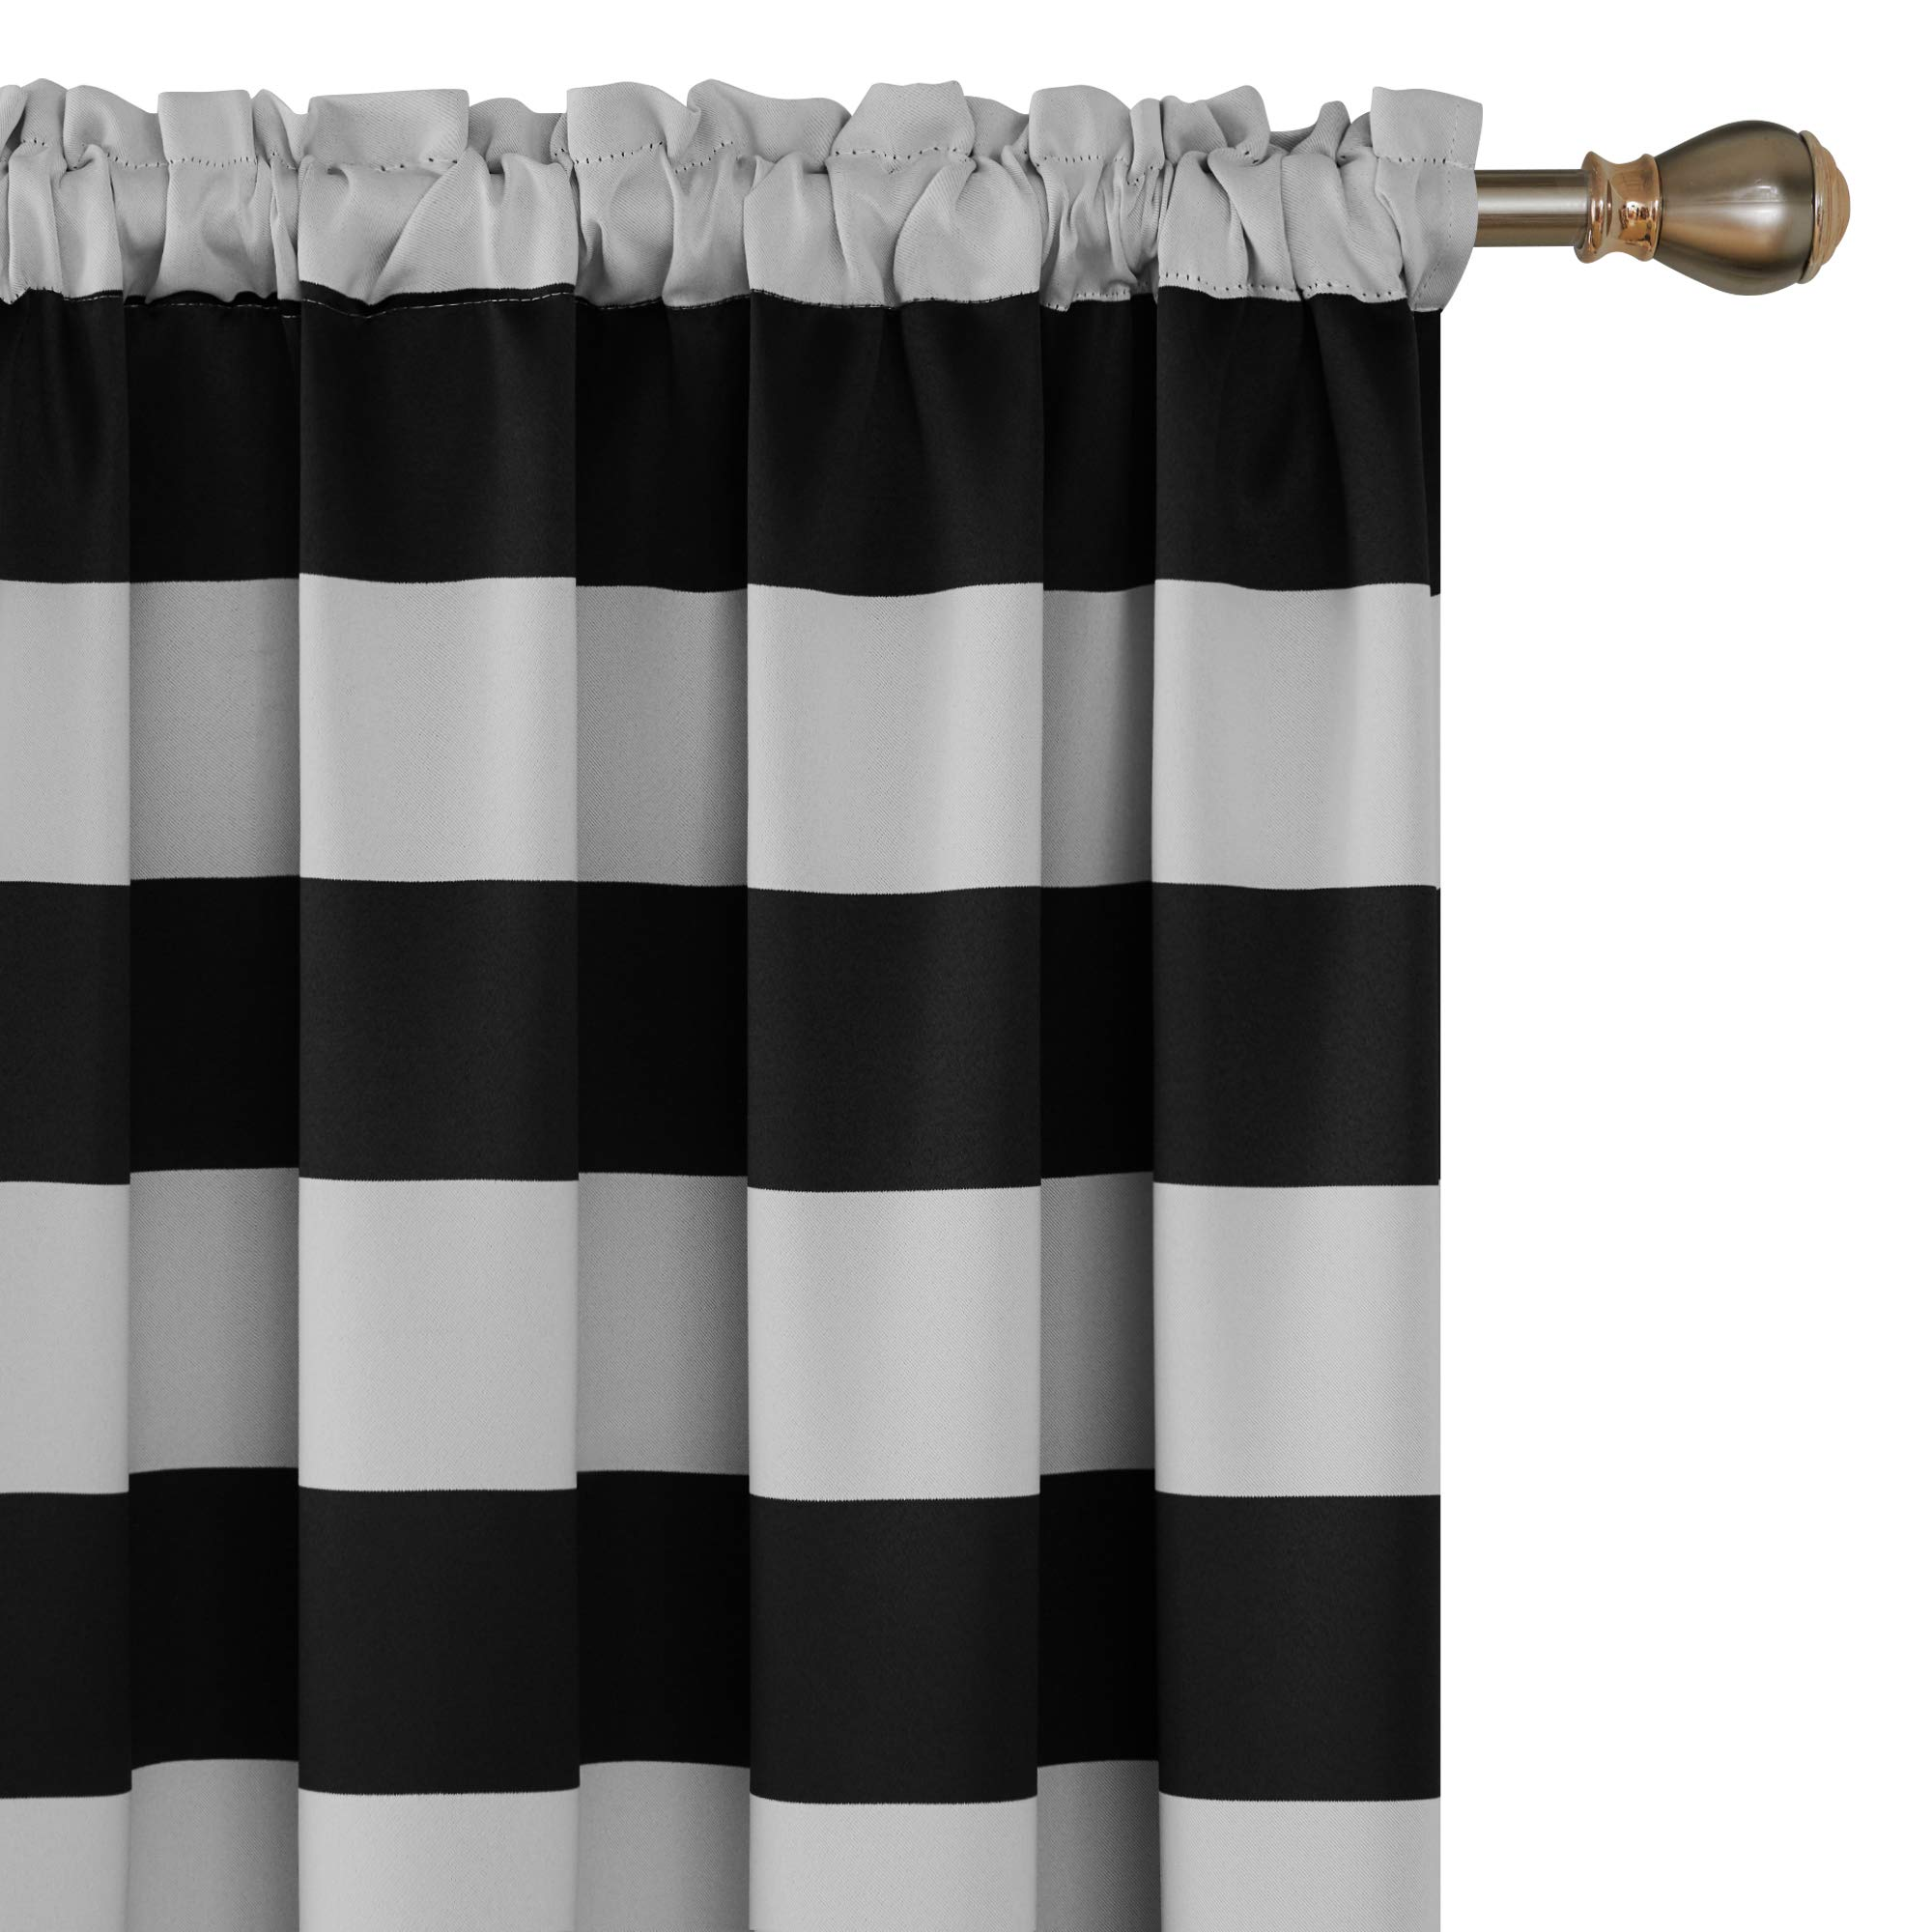 Amazon Com Deconovo Striped Room Darkening Curtains Rod Pocket Black And Greyish White Striped Curtains For Living Room 52w X 84l Black 2 Panel Curtains Home Kitchen